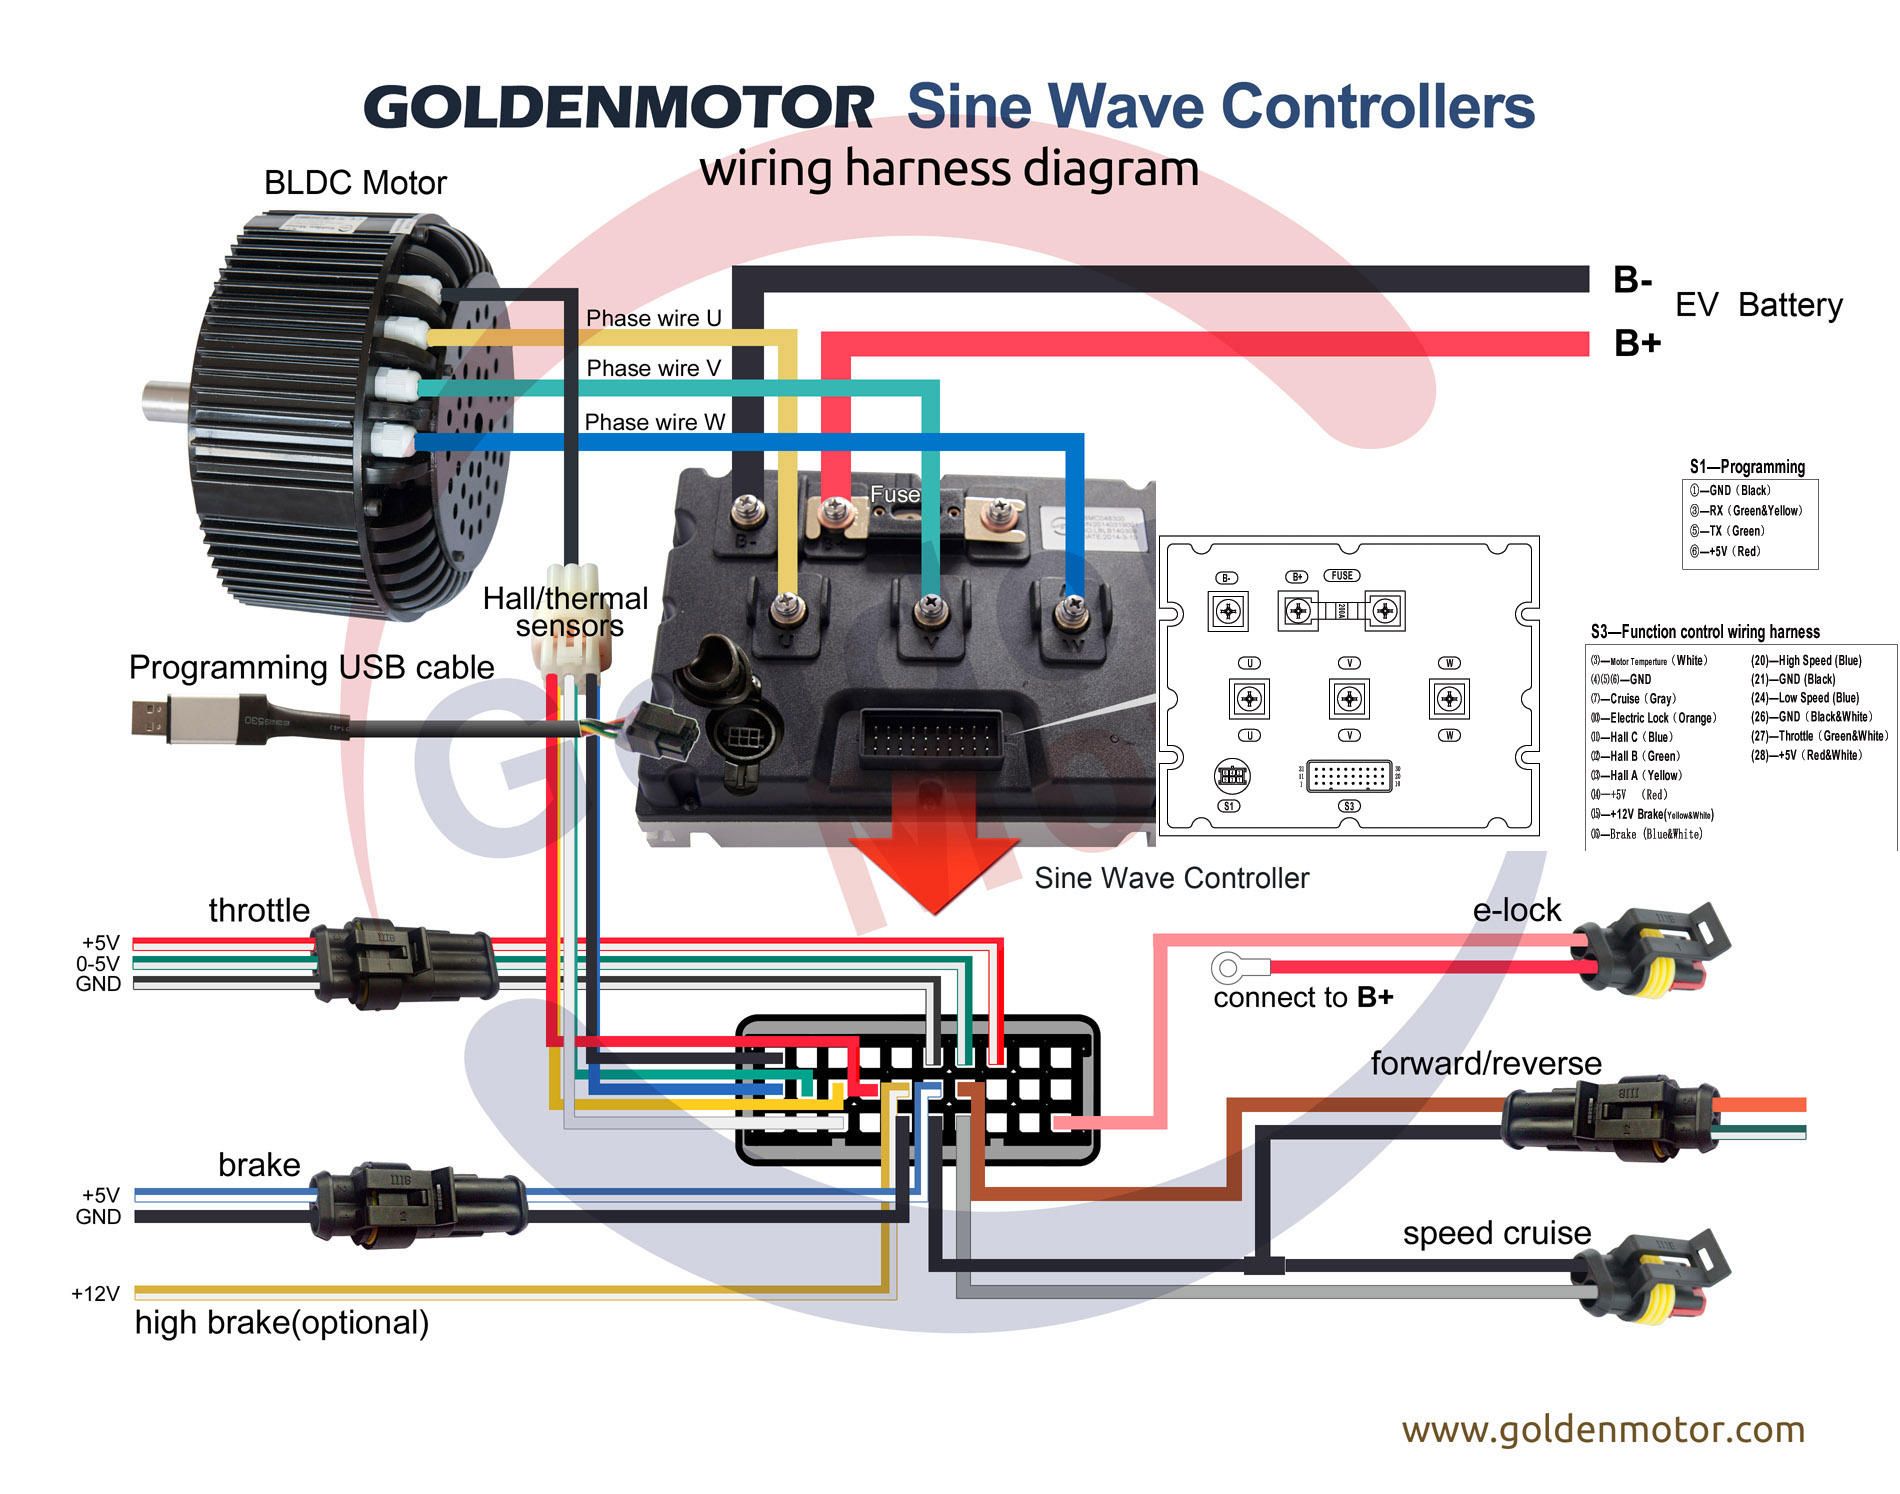 motor controller wiring diagram electric car, electric trike, electric car motor, electric ...